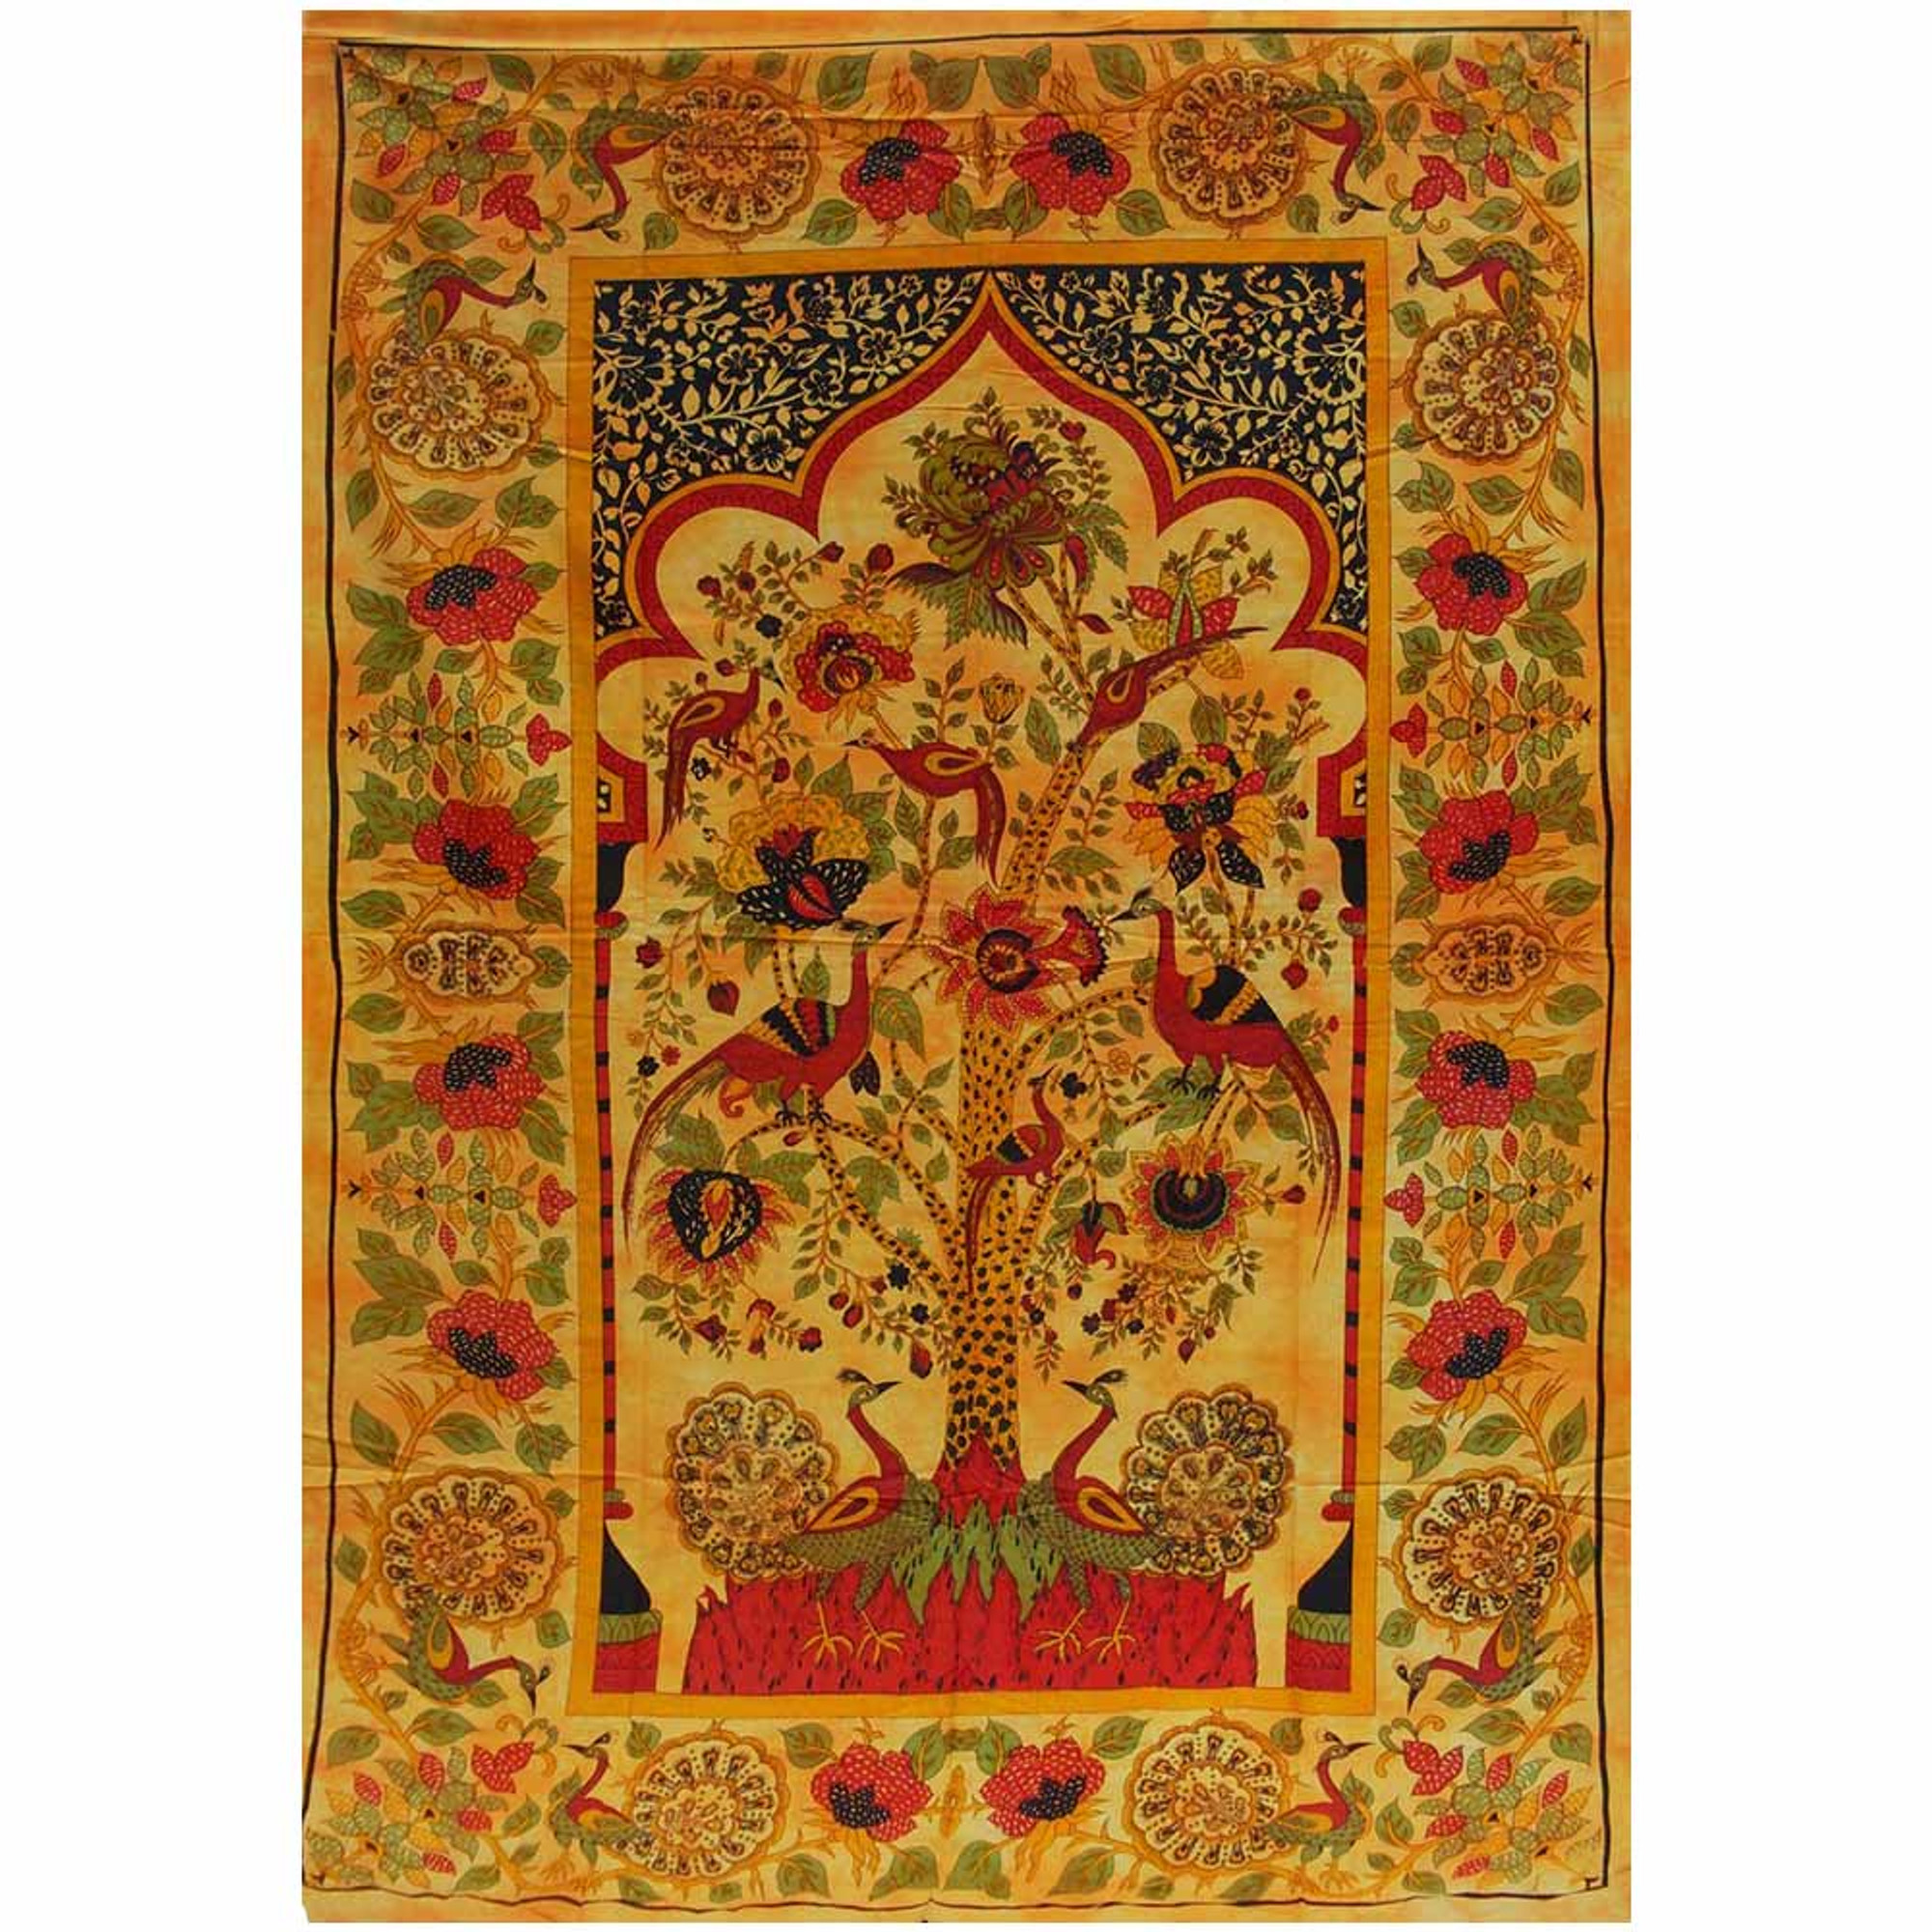 Temple Tree Of Life Tapestry Authentic Indian Print